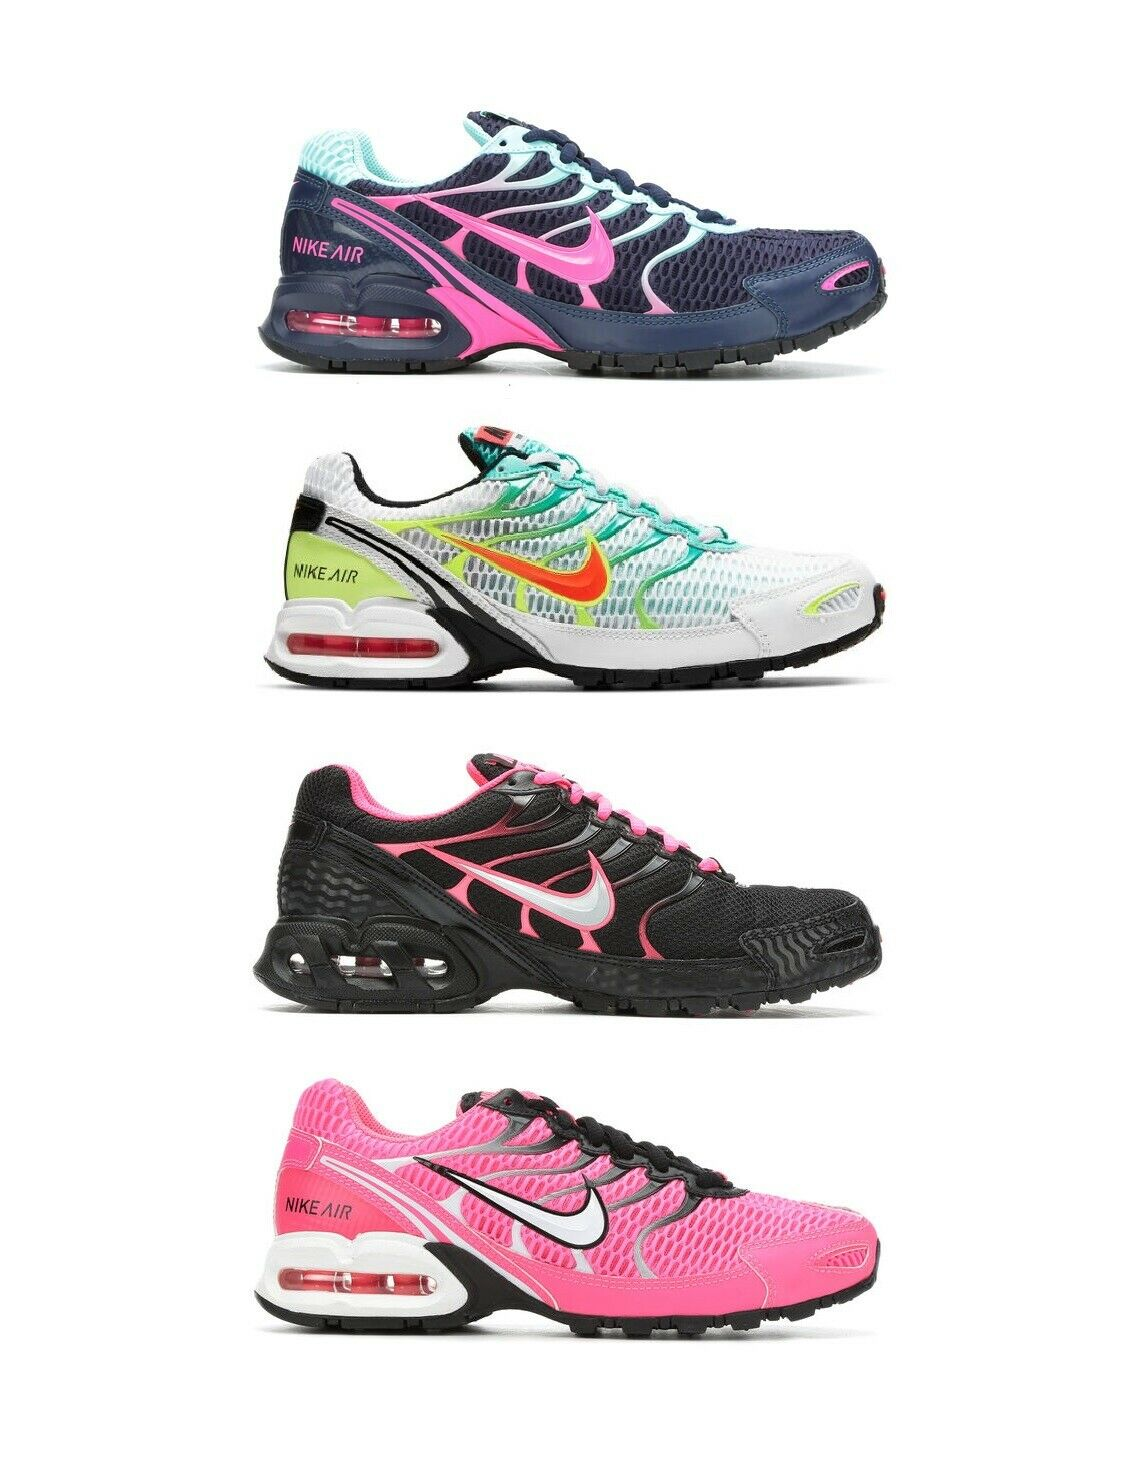 Nike Air Max Torch 4 IV WOMEN'S Running Cross Training Gym W